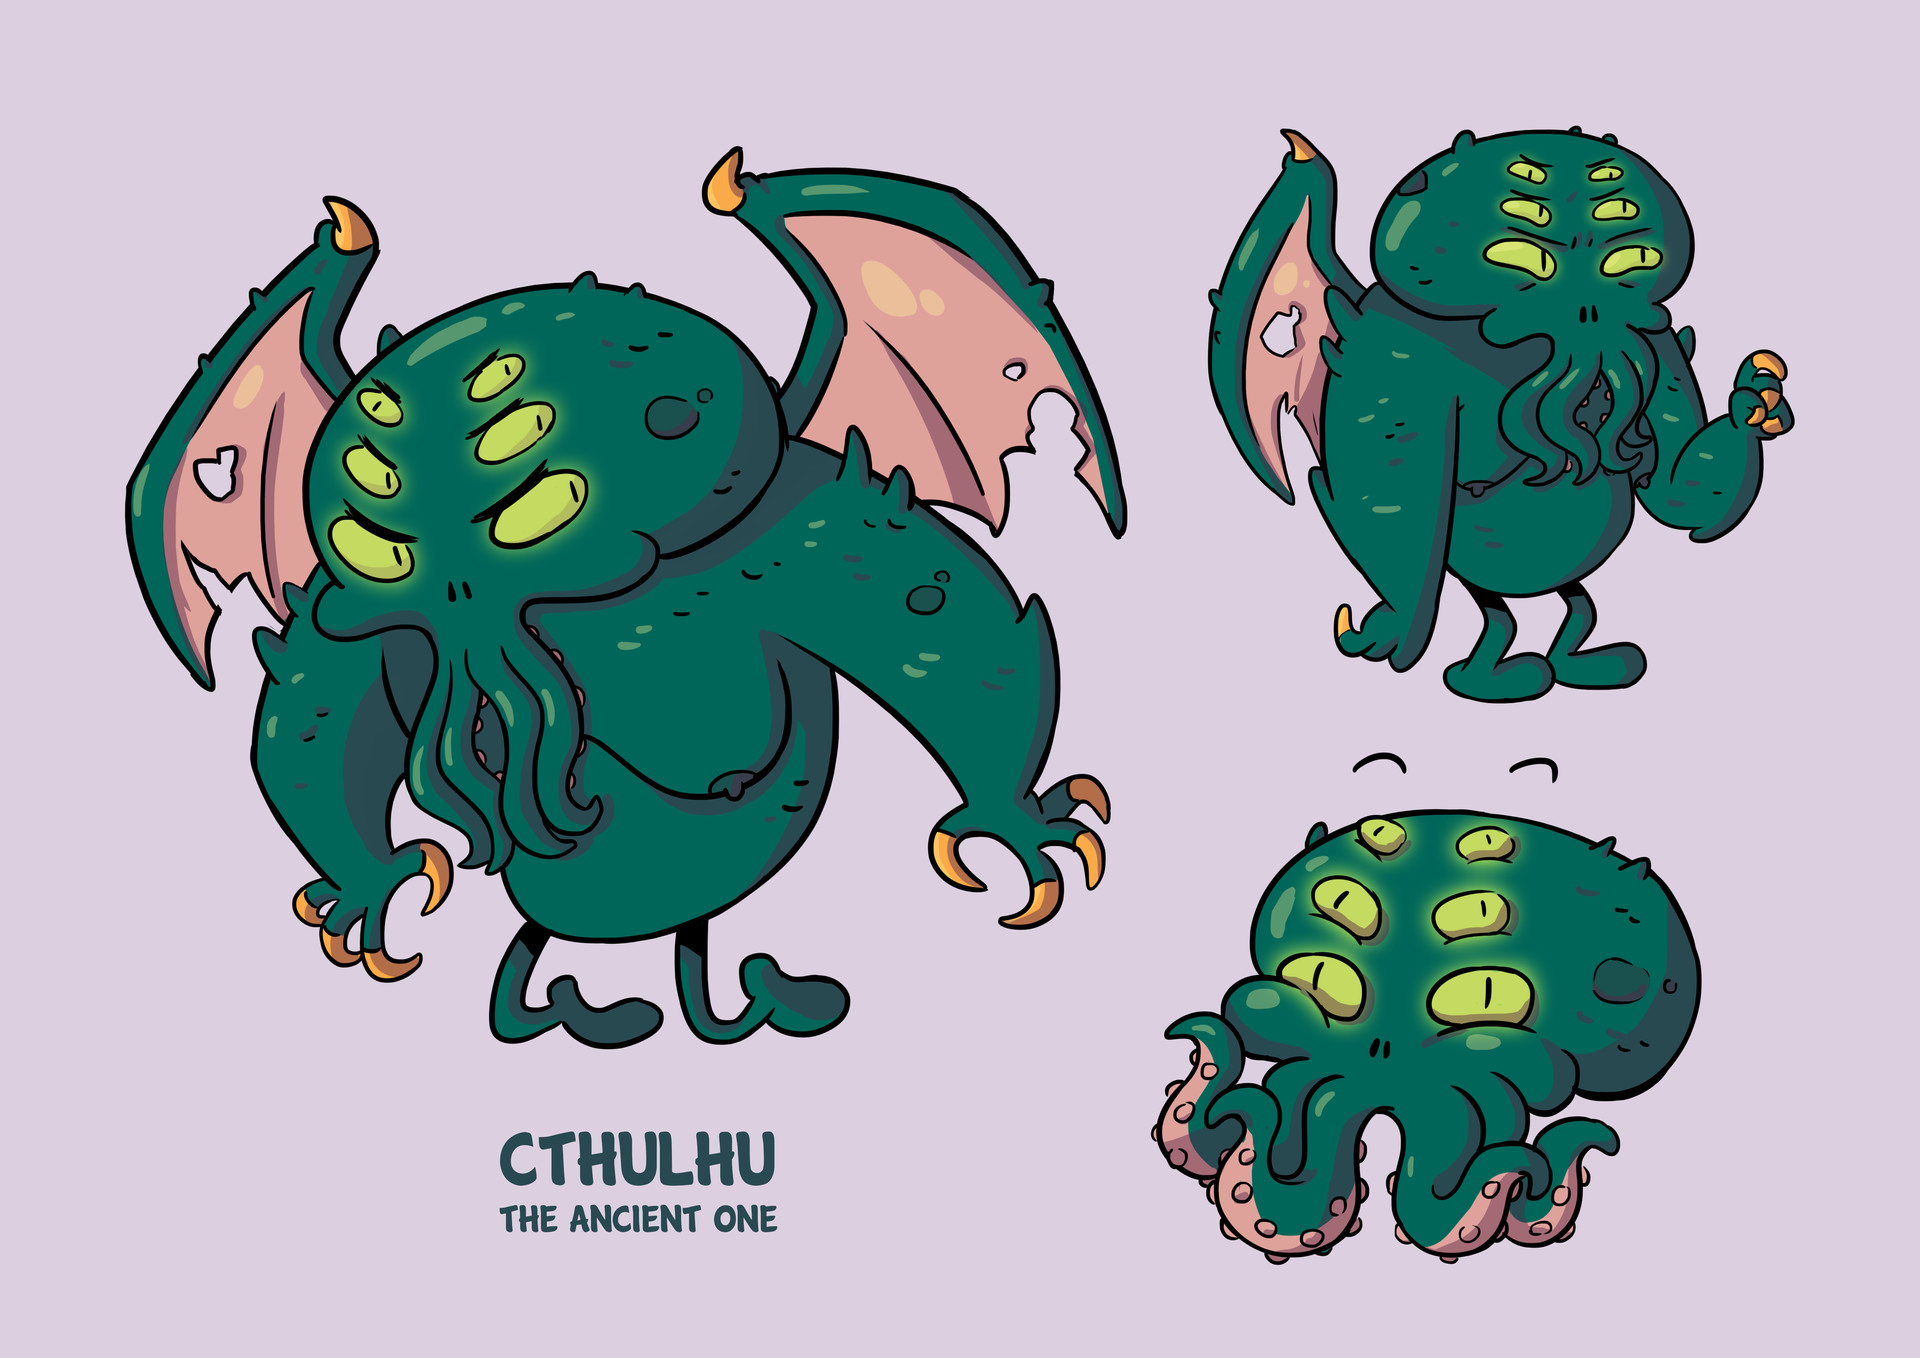 Cthulhu - The Ancient One